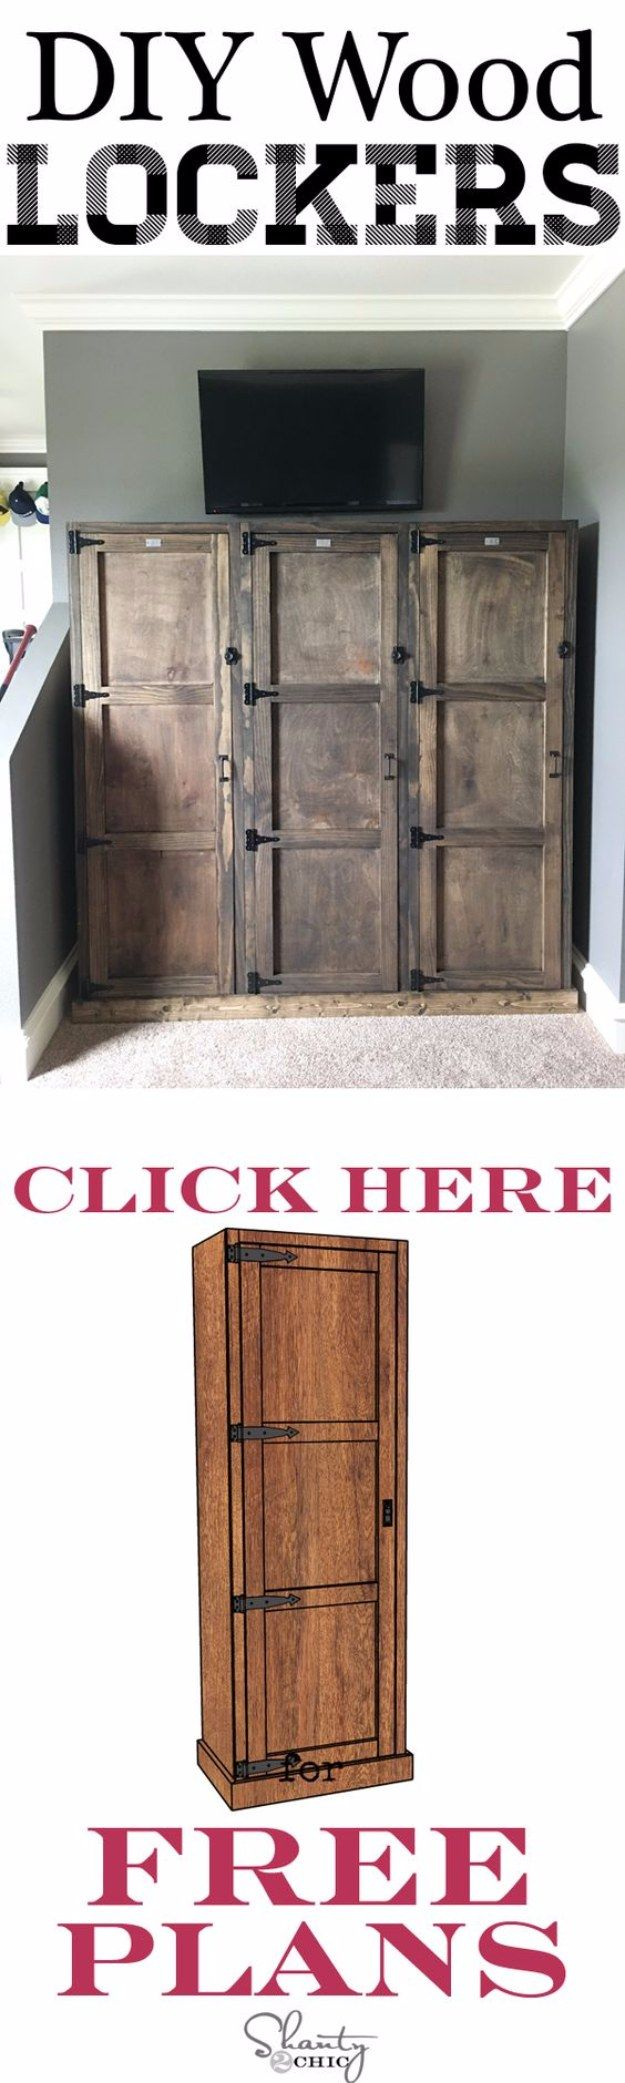 134 best diy organizing images on pinterest good ideas bedrooms 36 diy ideas you need for your garage solutioingenieria Image collections